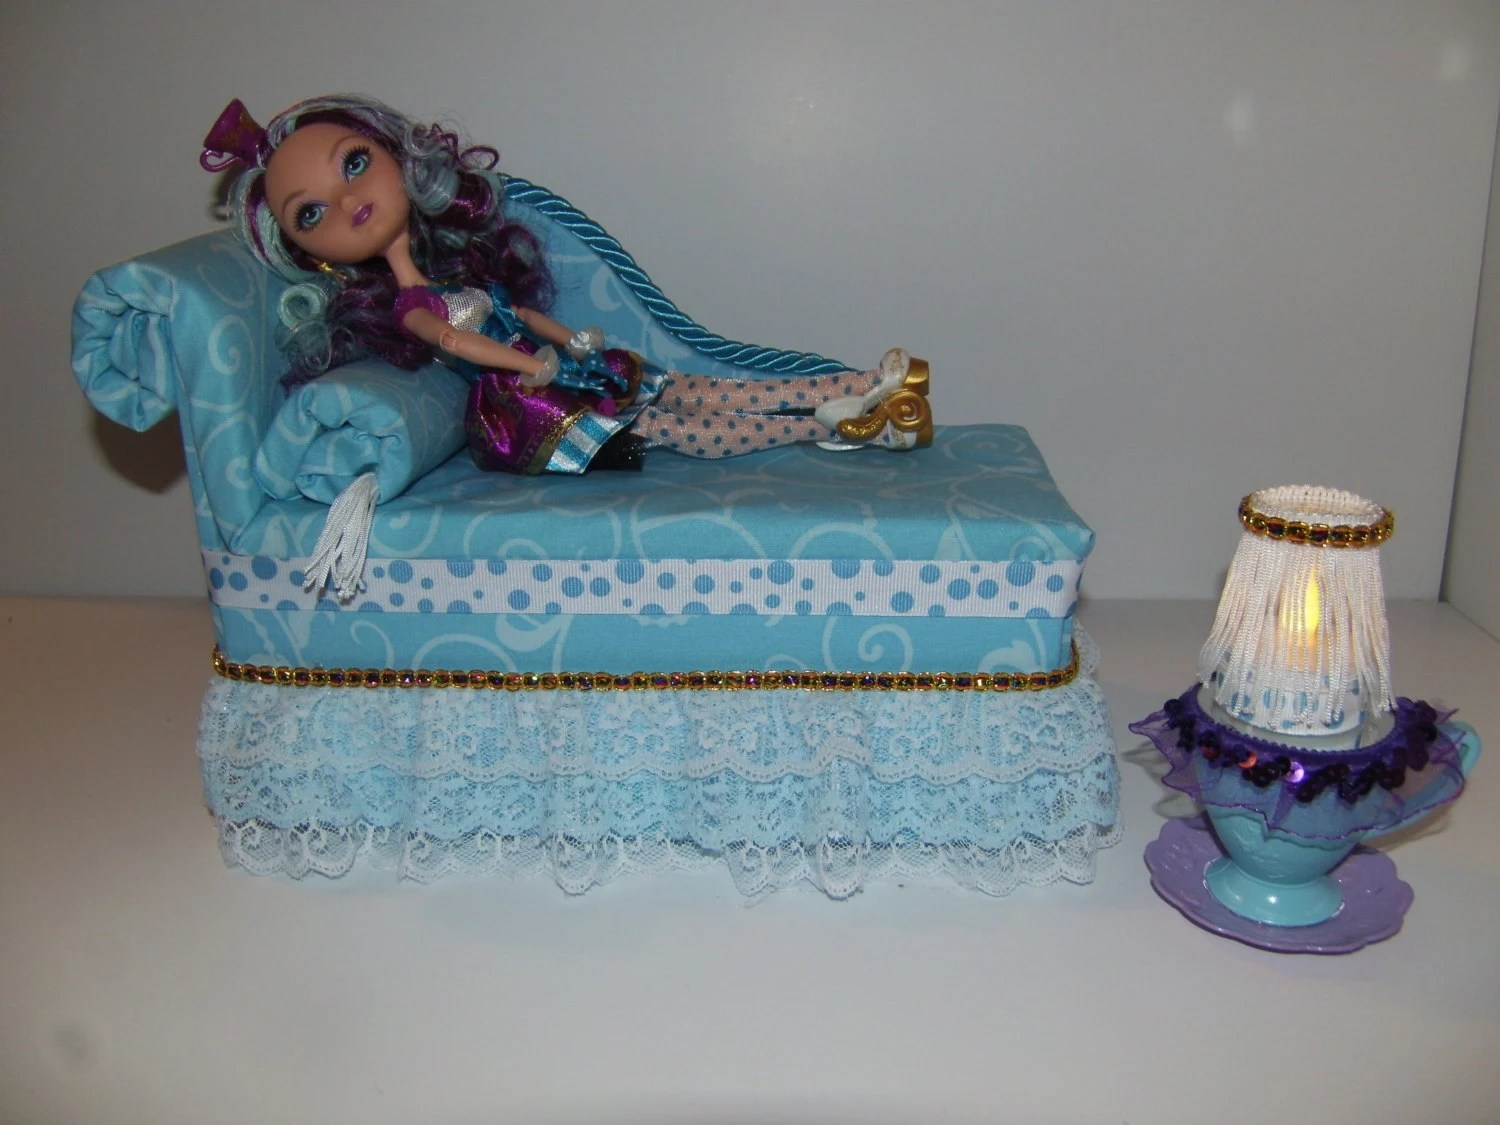 Furniture For Ever After High Dolls Handmade Chaise Lounge Bed